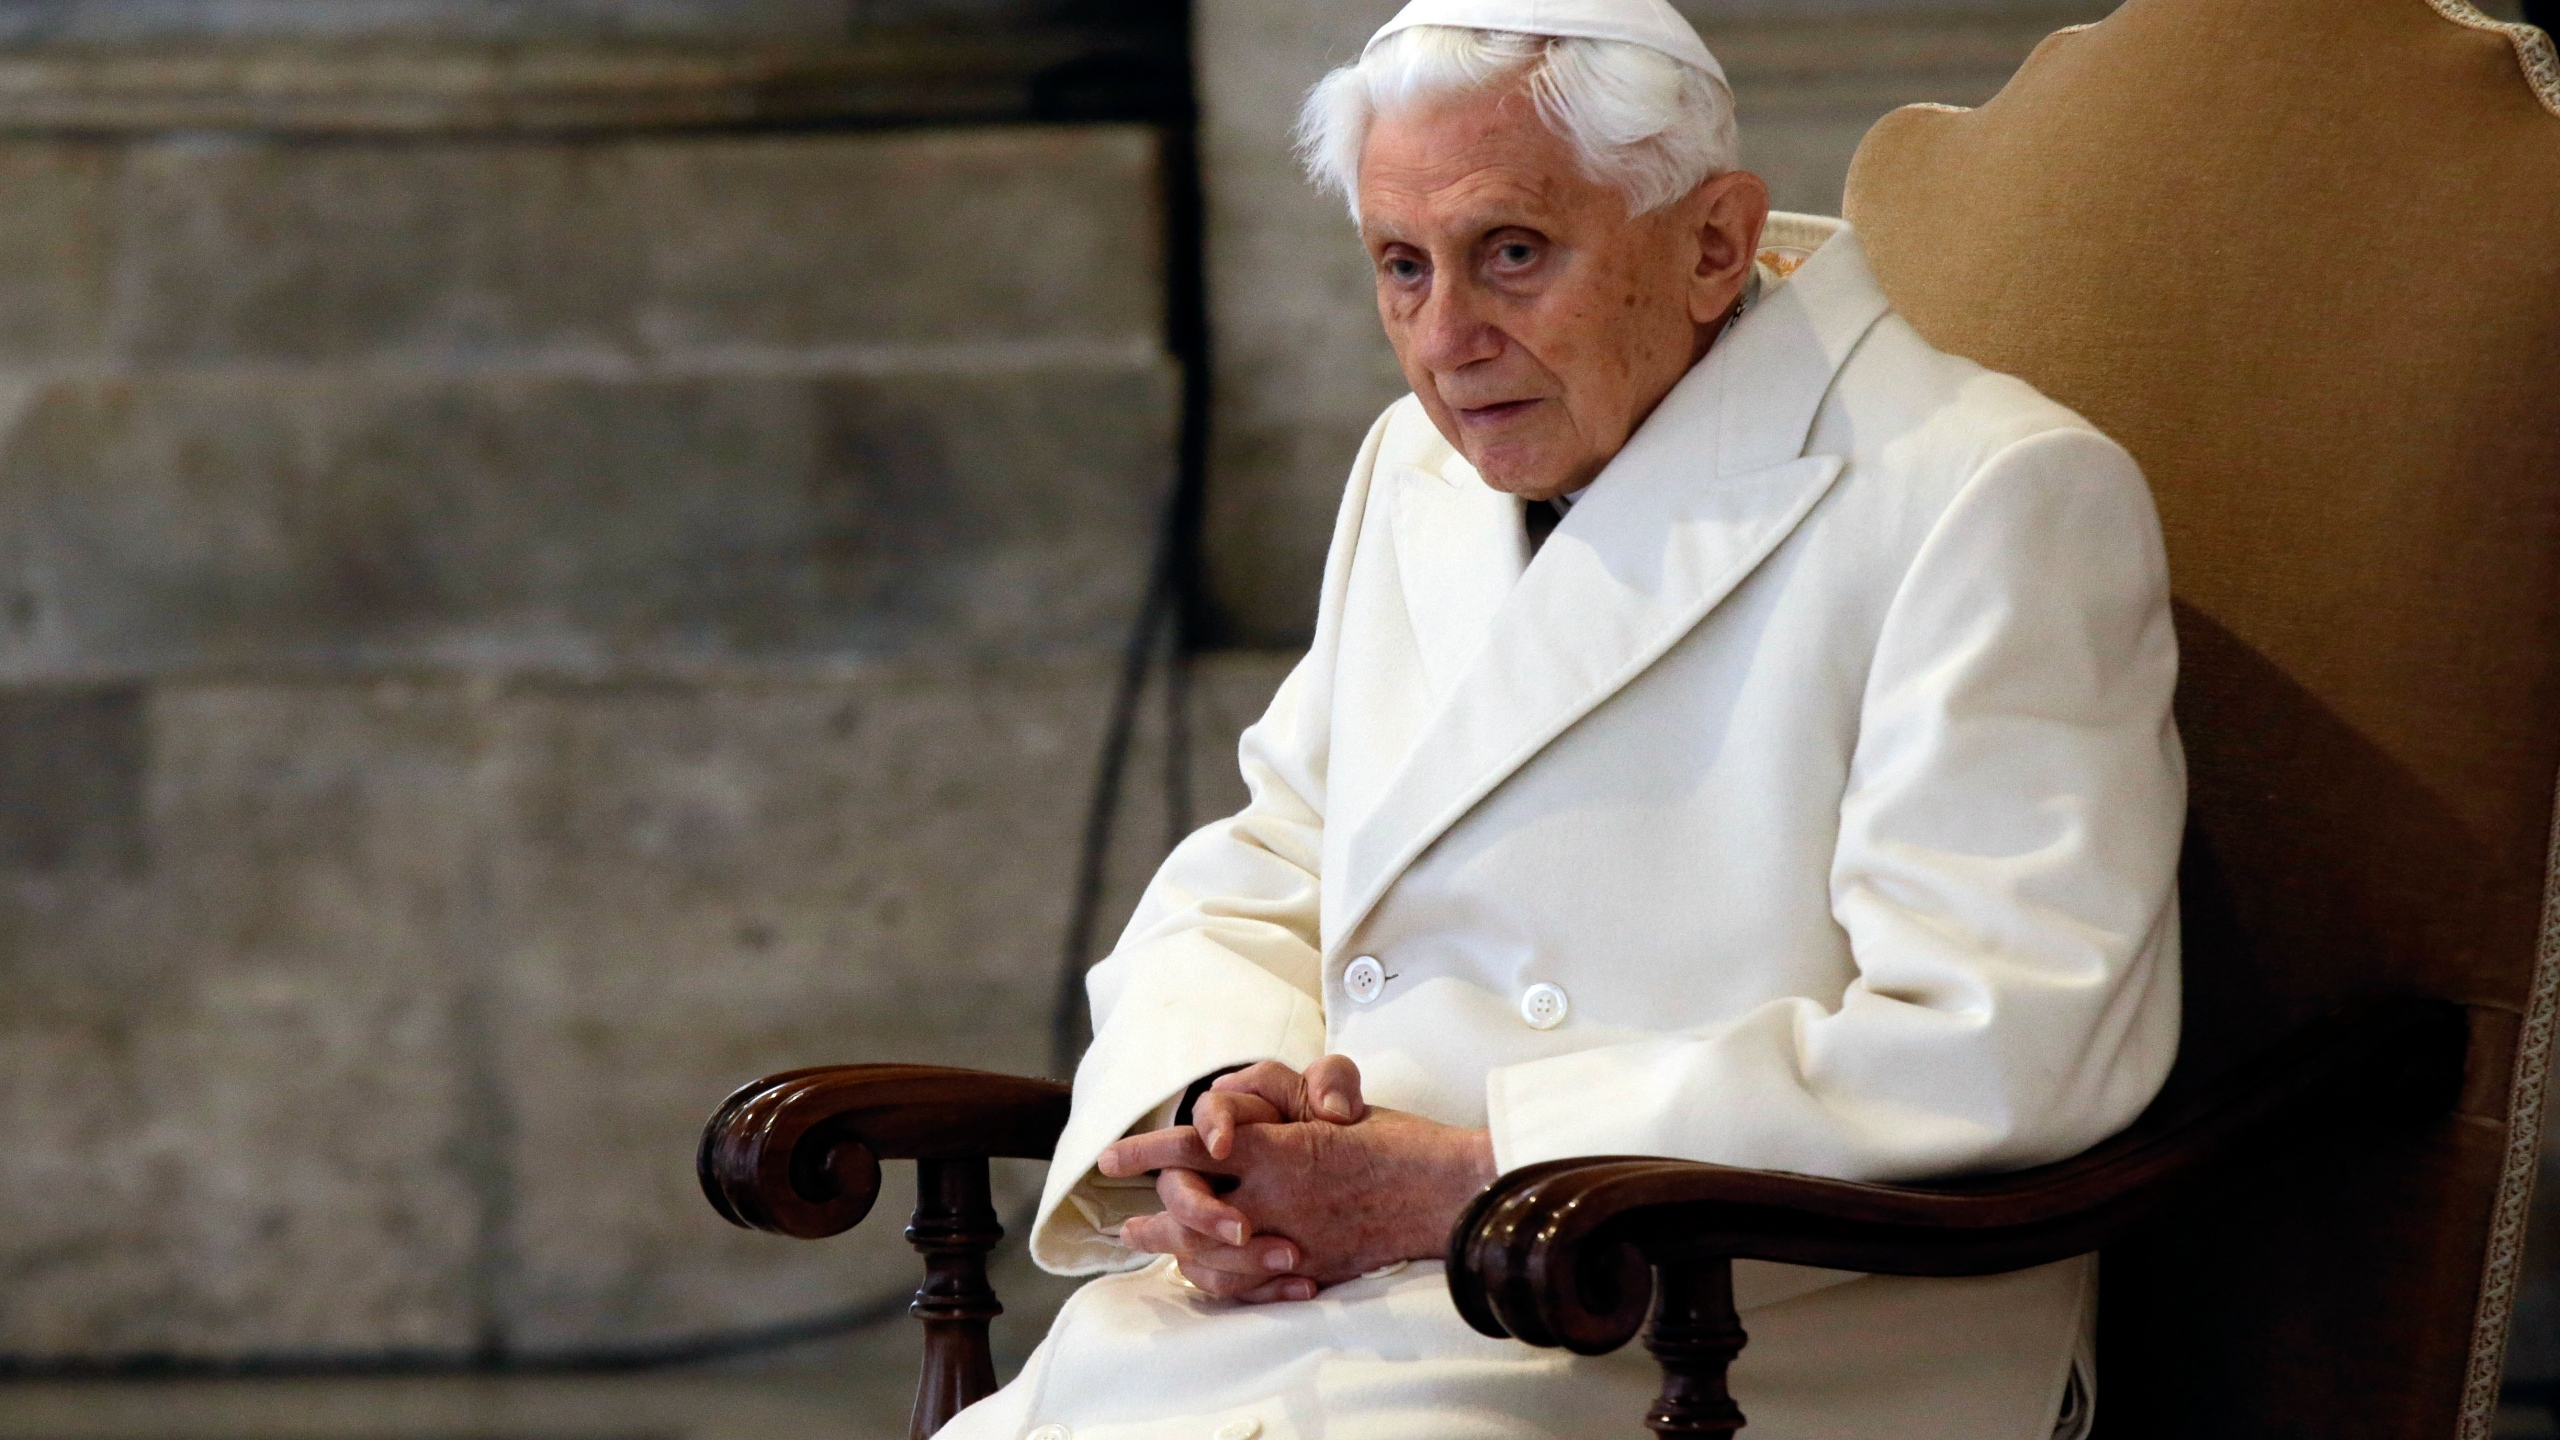 In this Tuesday, Dec. 8, 2015. filer, Pope Emeritus Benedict XVI attends a Mass prior to the opening of the Holy Door of St. Peter's Basilica, formally starting the Jubilee of Mercy, at the Vatican. (AP Photo/Gregorio Borgia, File)